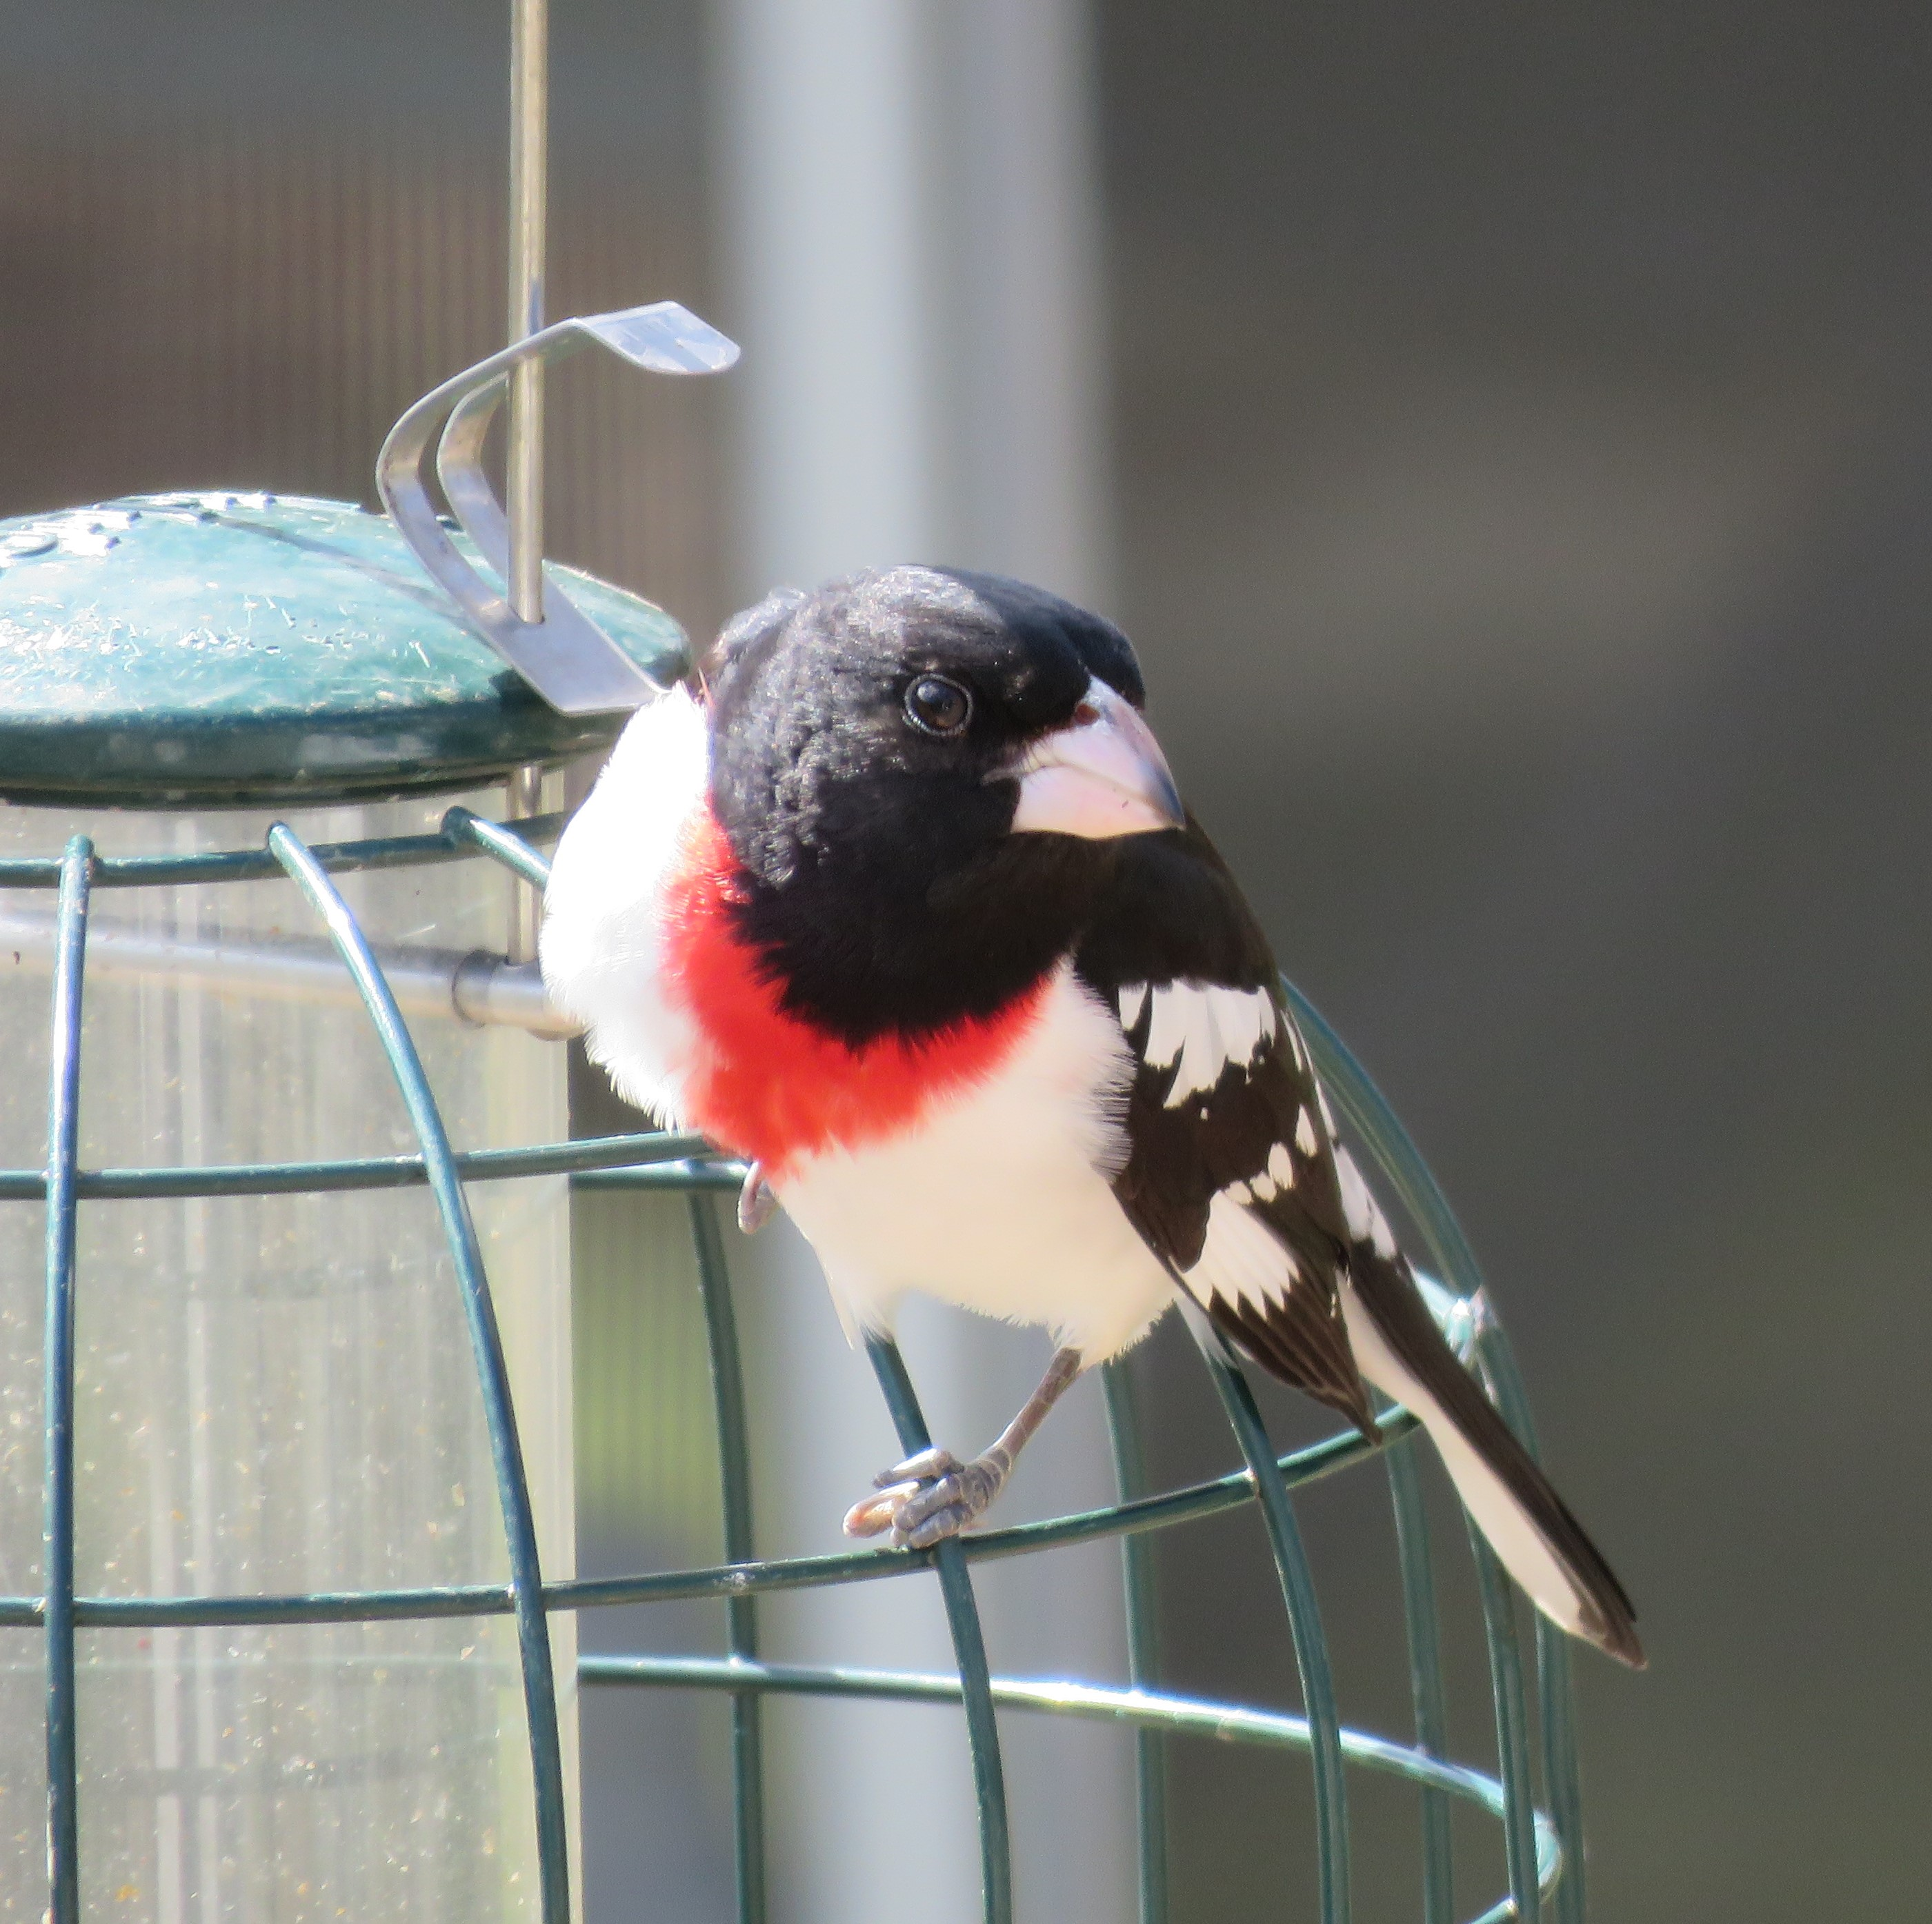 rose-breasted-grosbeak-male-songbirds-birds-wildlife